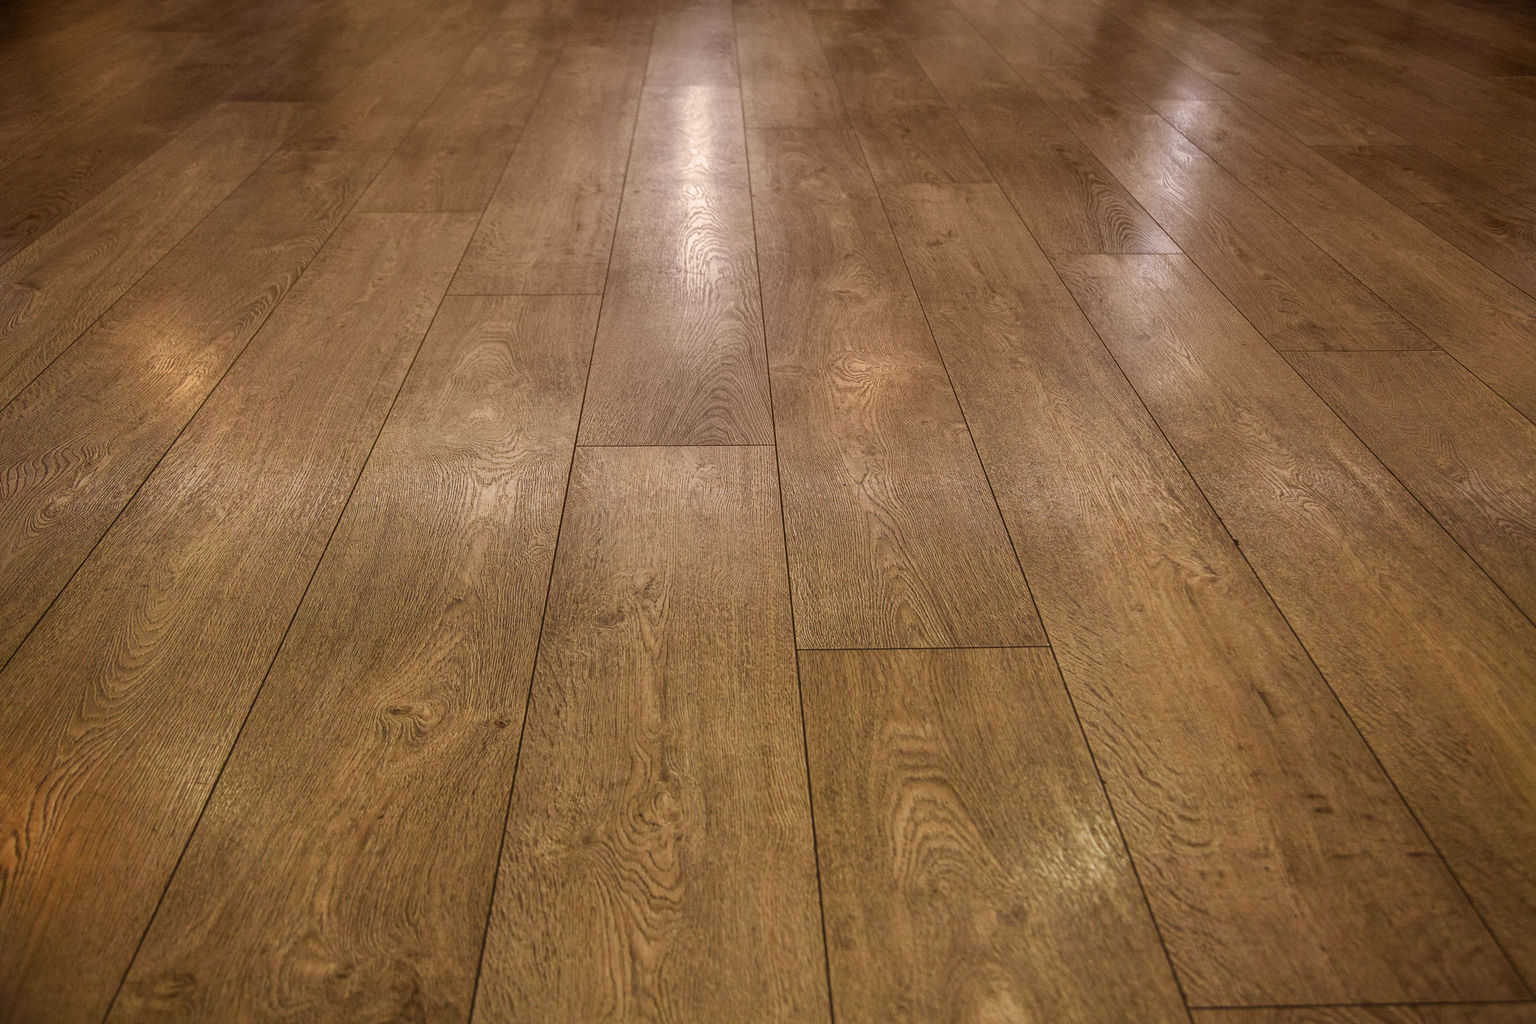 Bamboo vs hardwood flooring a side by side comparison for Hardwood floors vs carpet